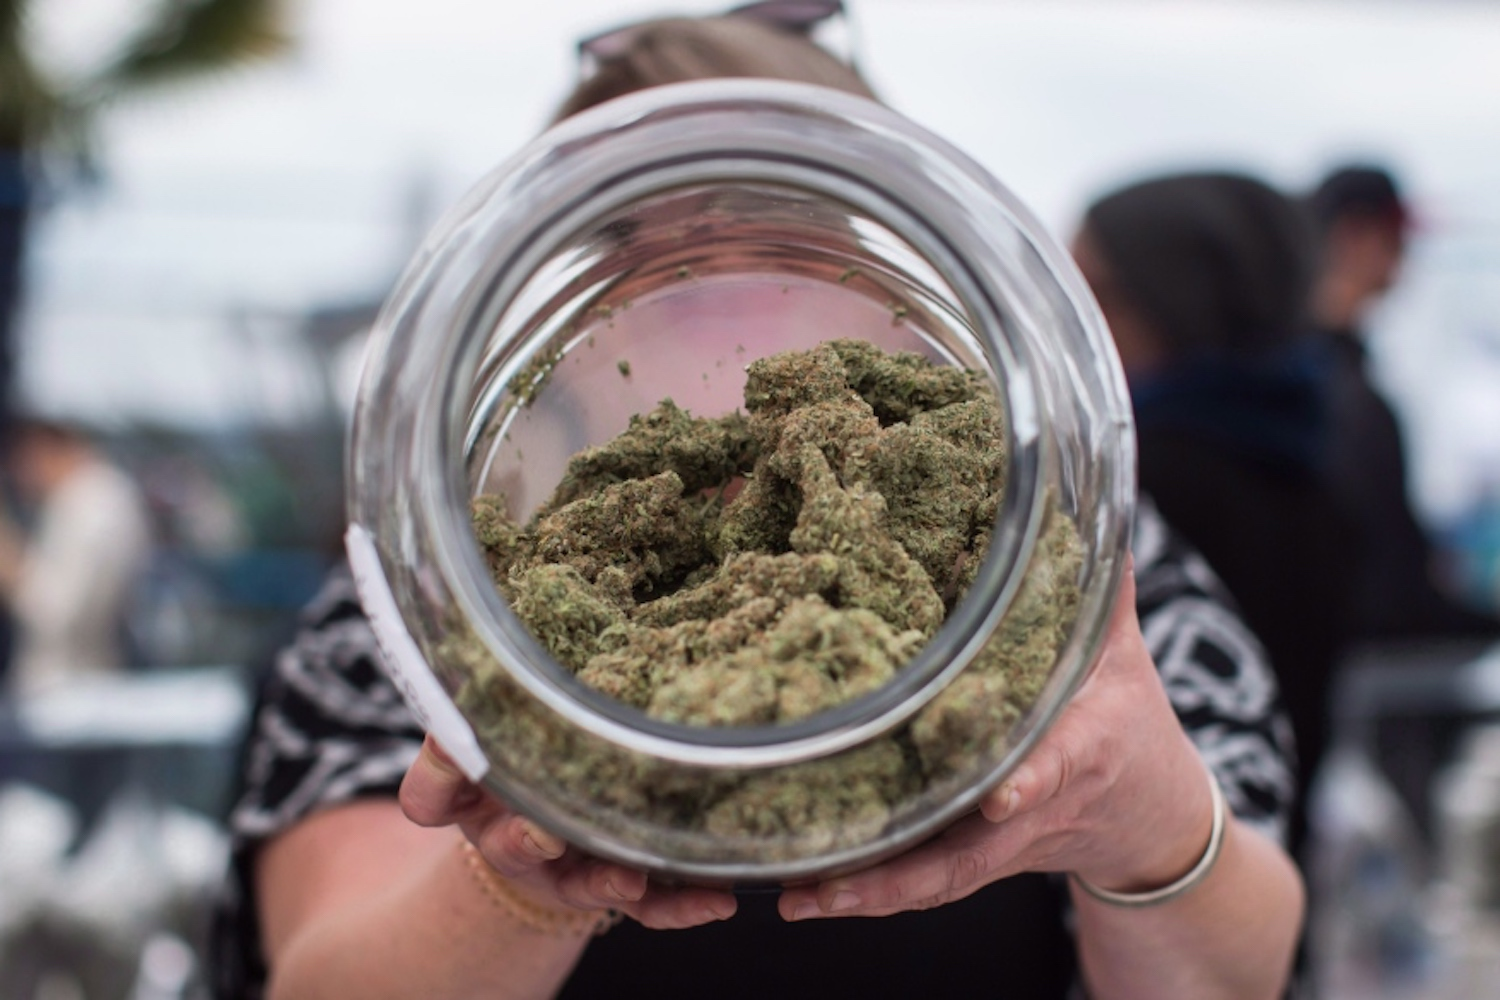 Know which the most requested are products in dispensary weed cannabis.